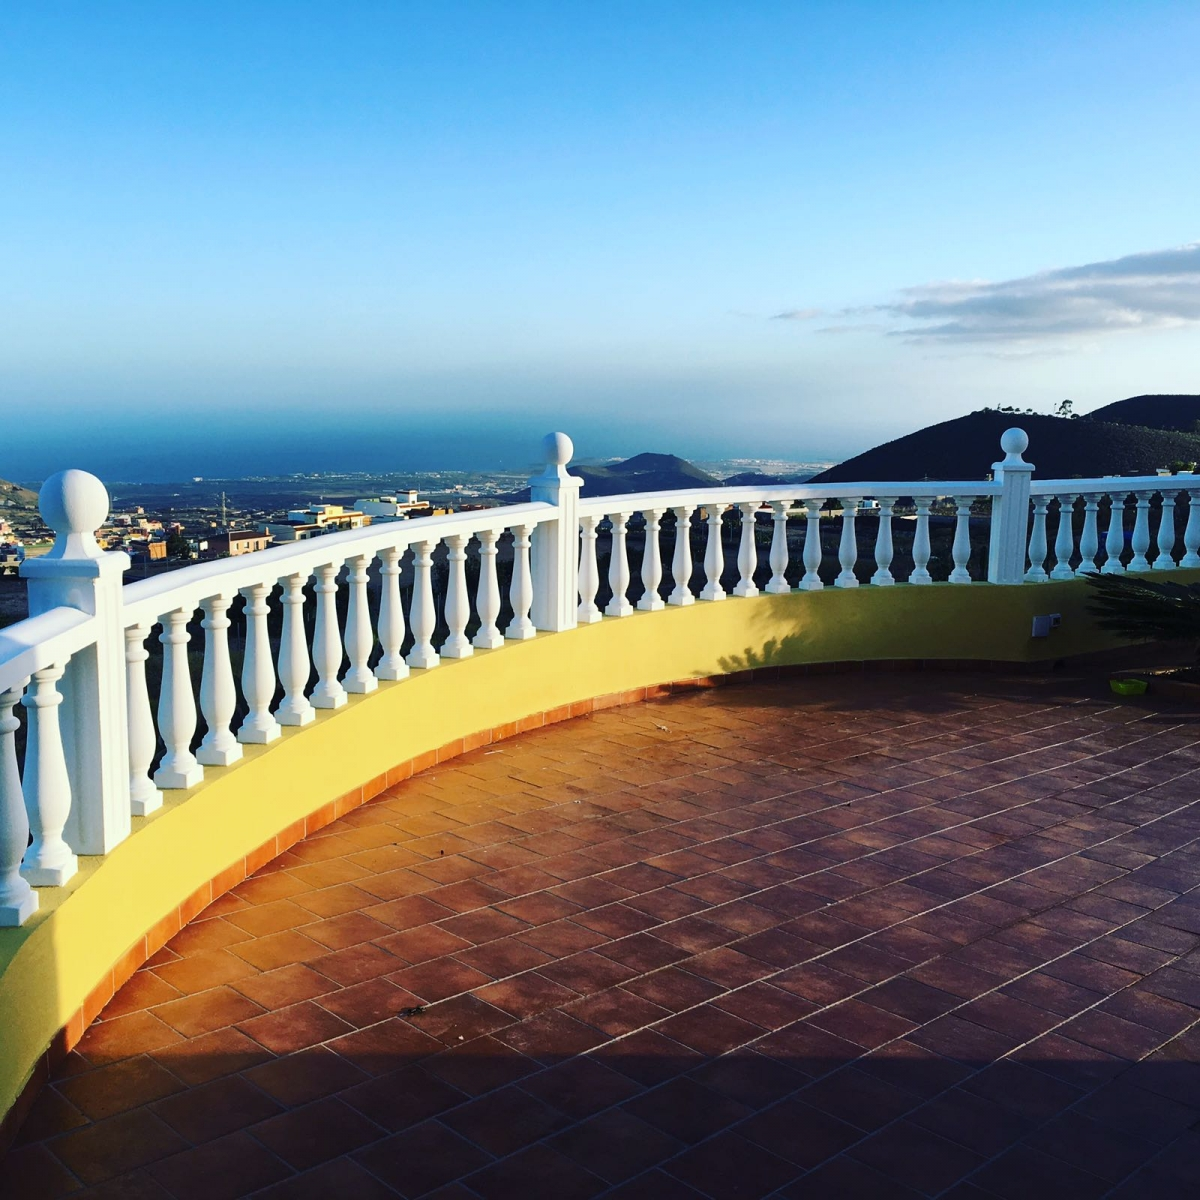 Properties for Sale in Tenerife, Canary Islands, Spain | SylkWayStar Real Estate. Finca with 10.000m<sup>2</sup>  of land. Image-22180